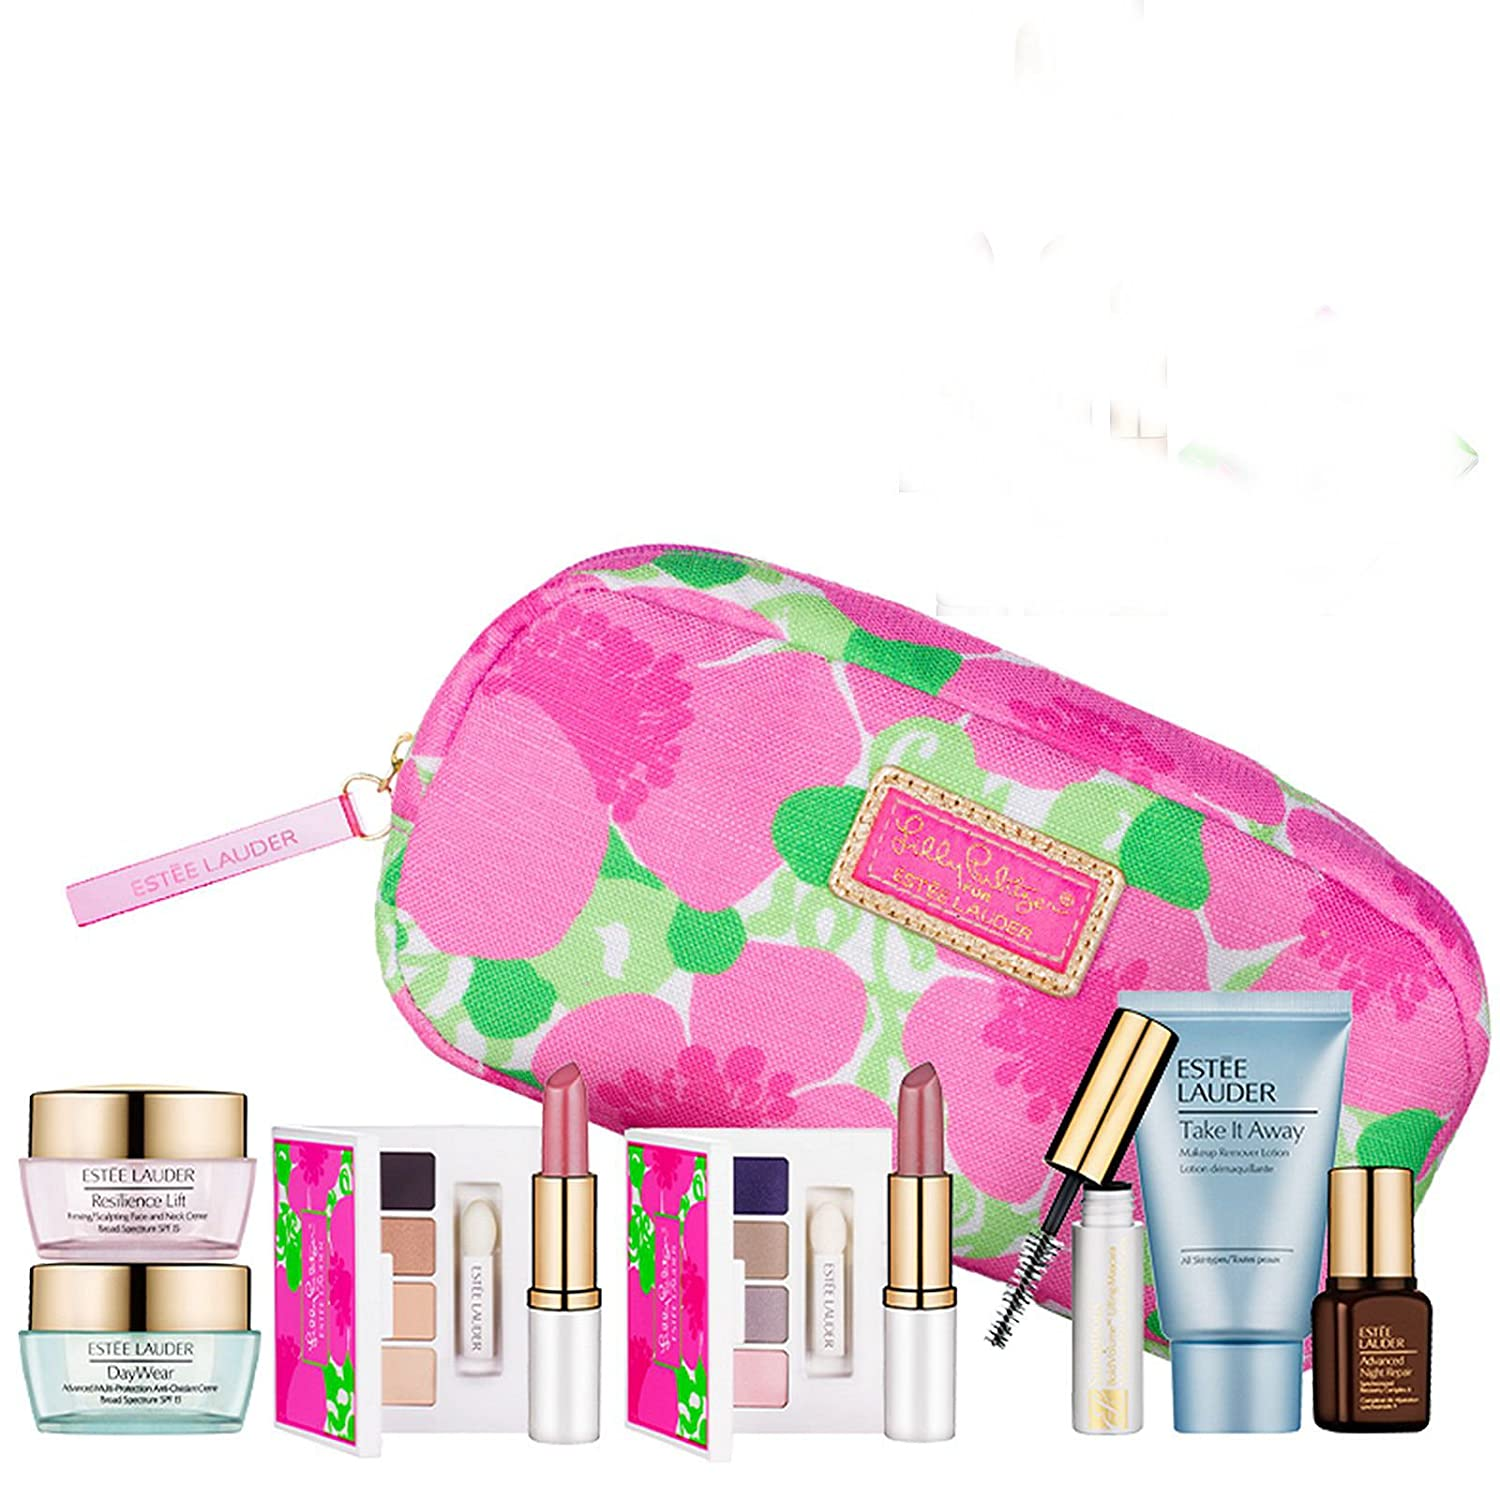 New-Estee-Lauder-Spring-7pc-Skincare-Makeup-Gift-Set-120-Value-with-Cosmetic-Bag